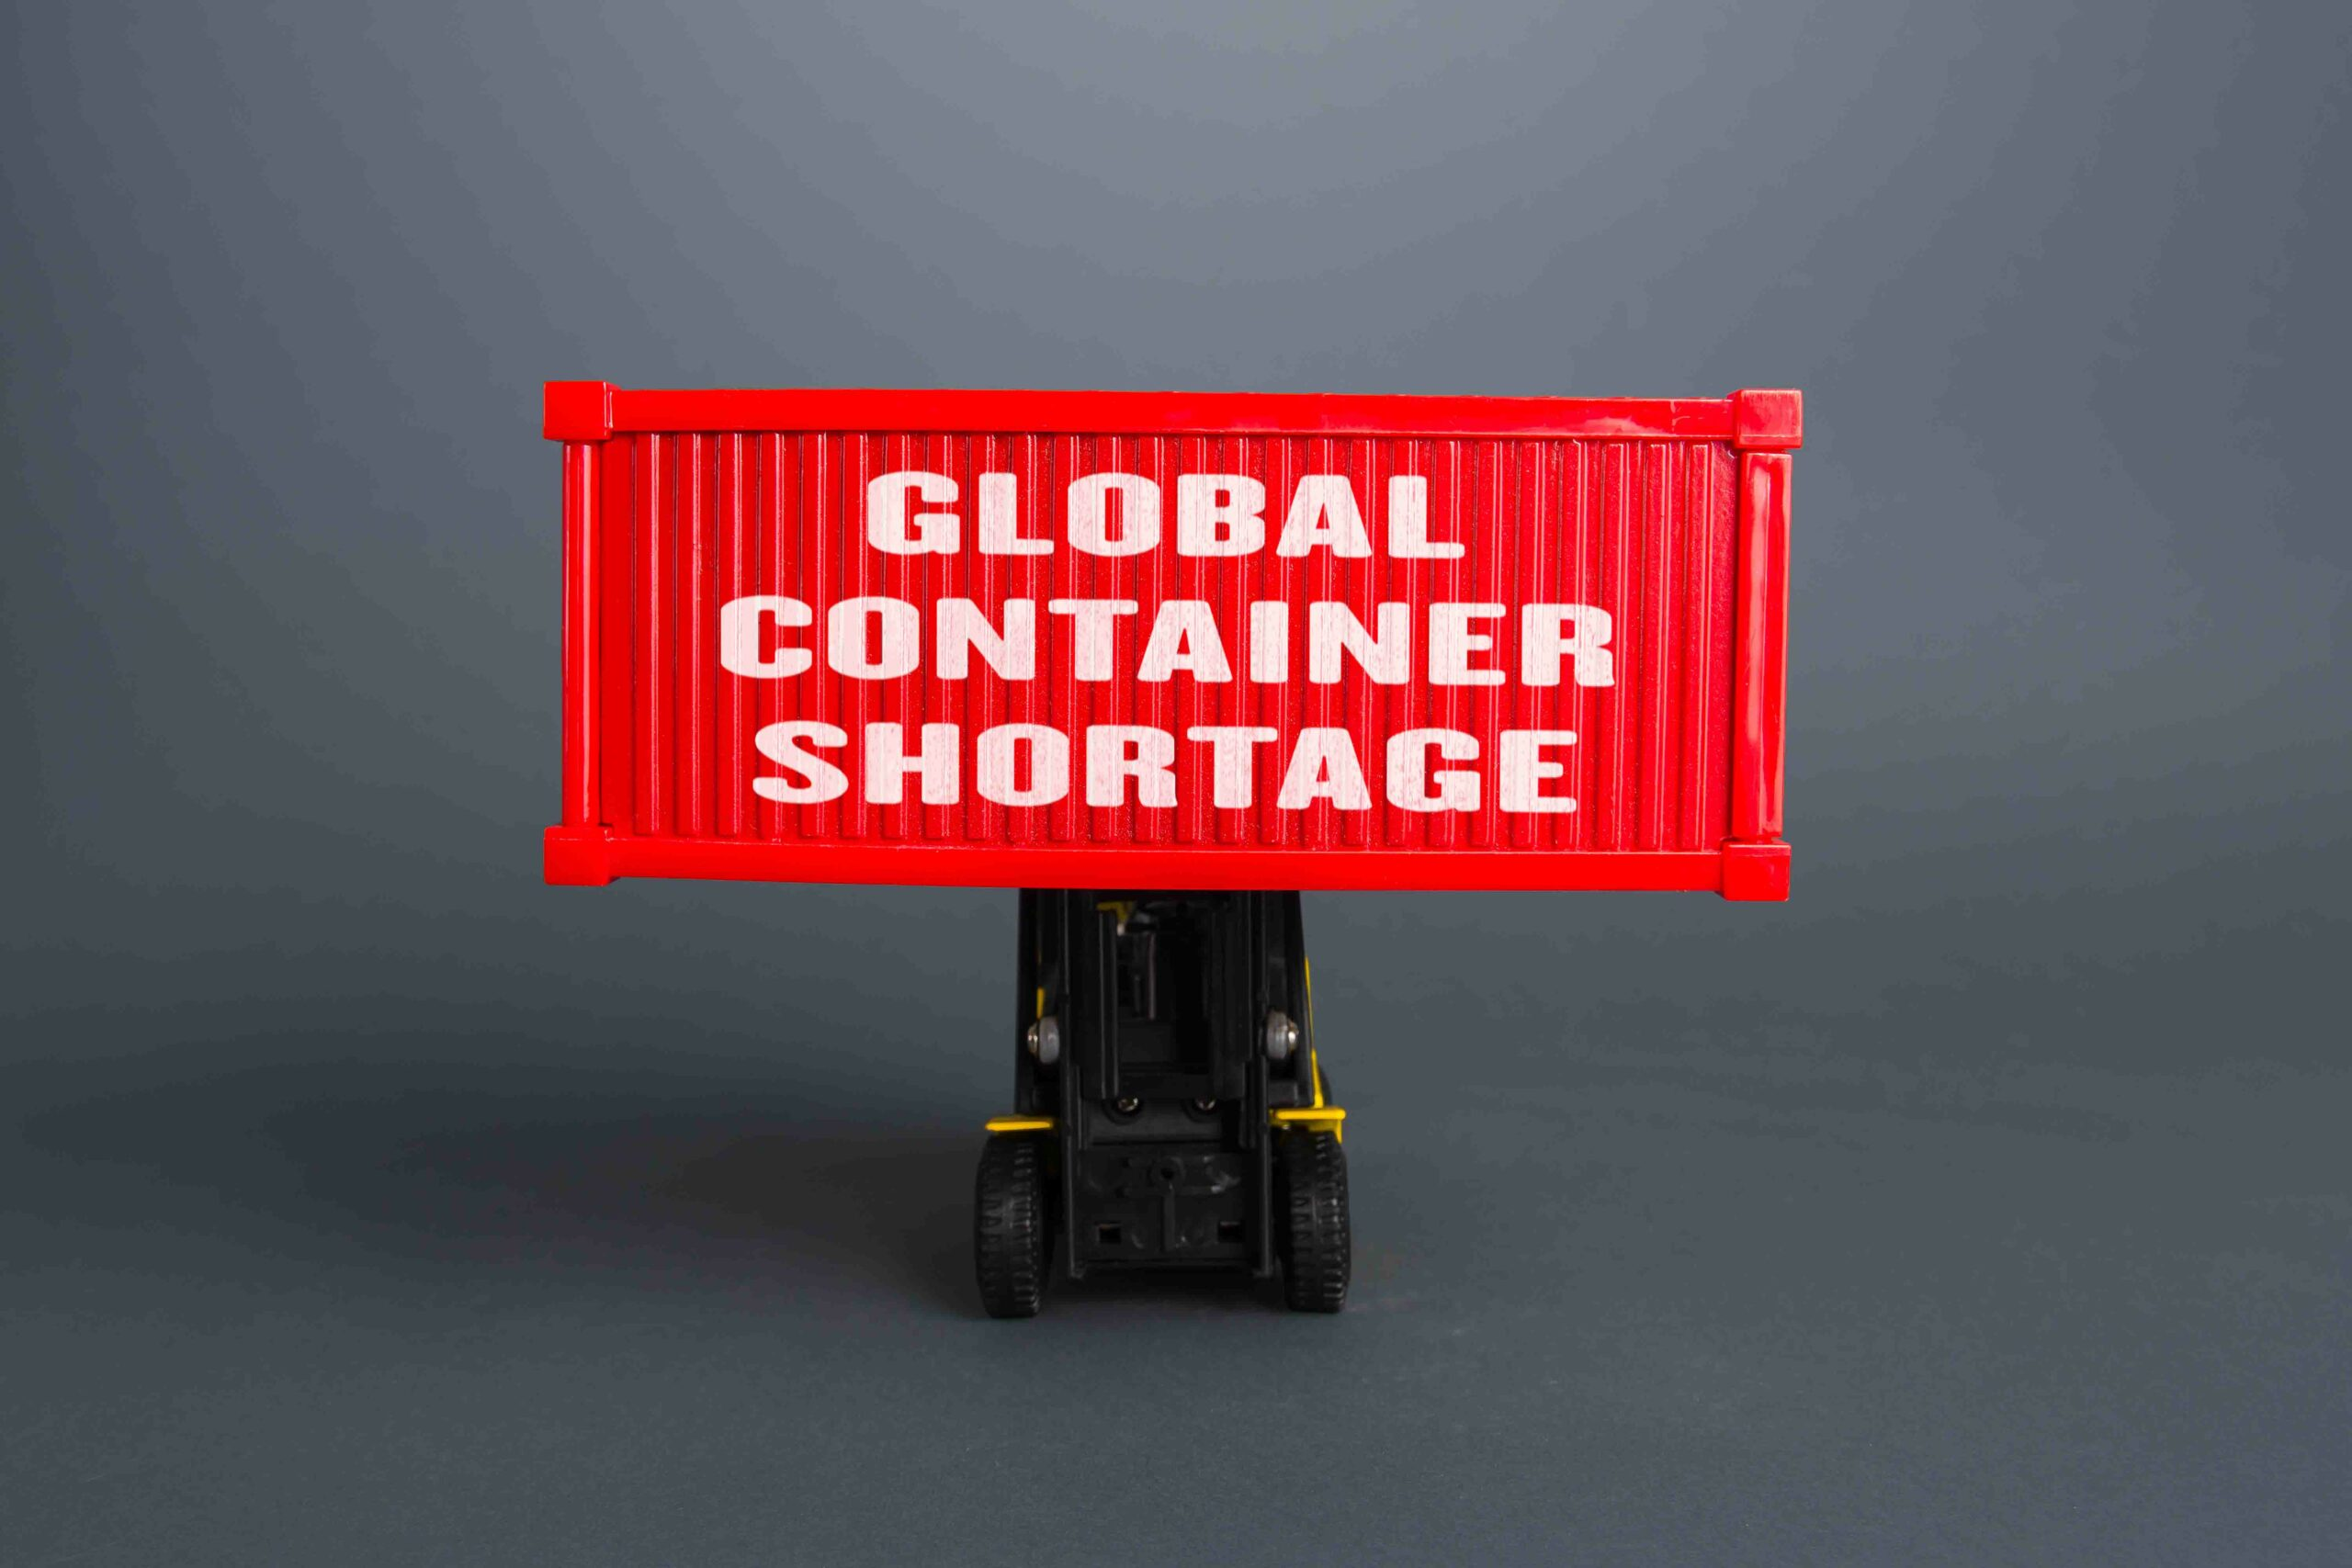 Shipping container shortage is expected to last well into 2022 Atlas Logistic NETwork